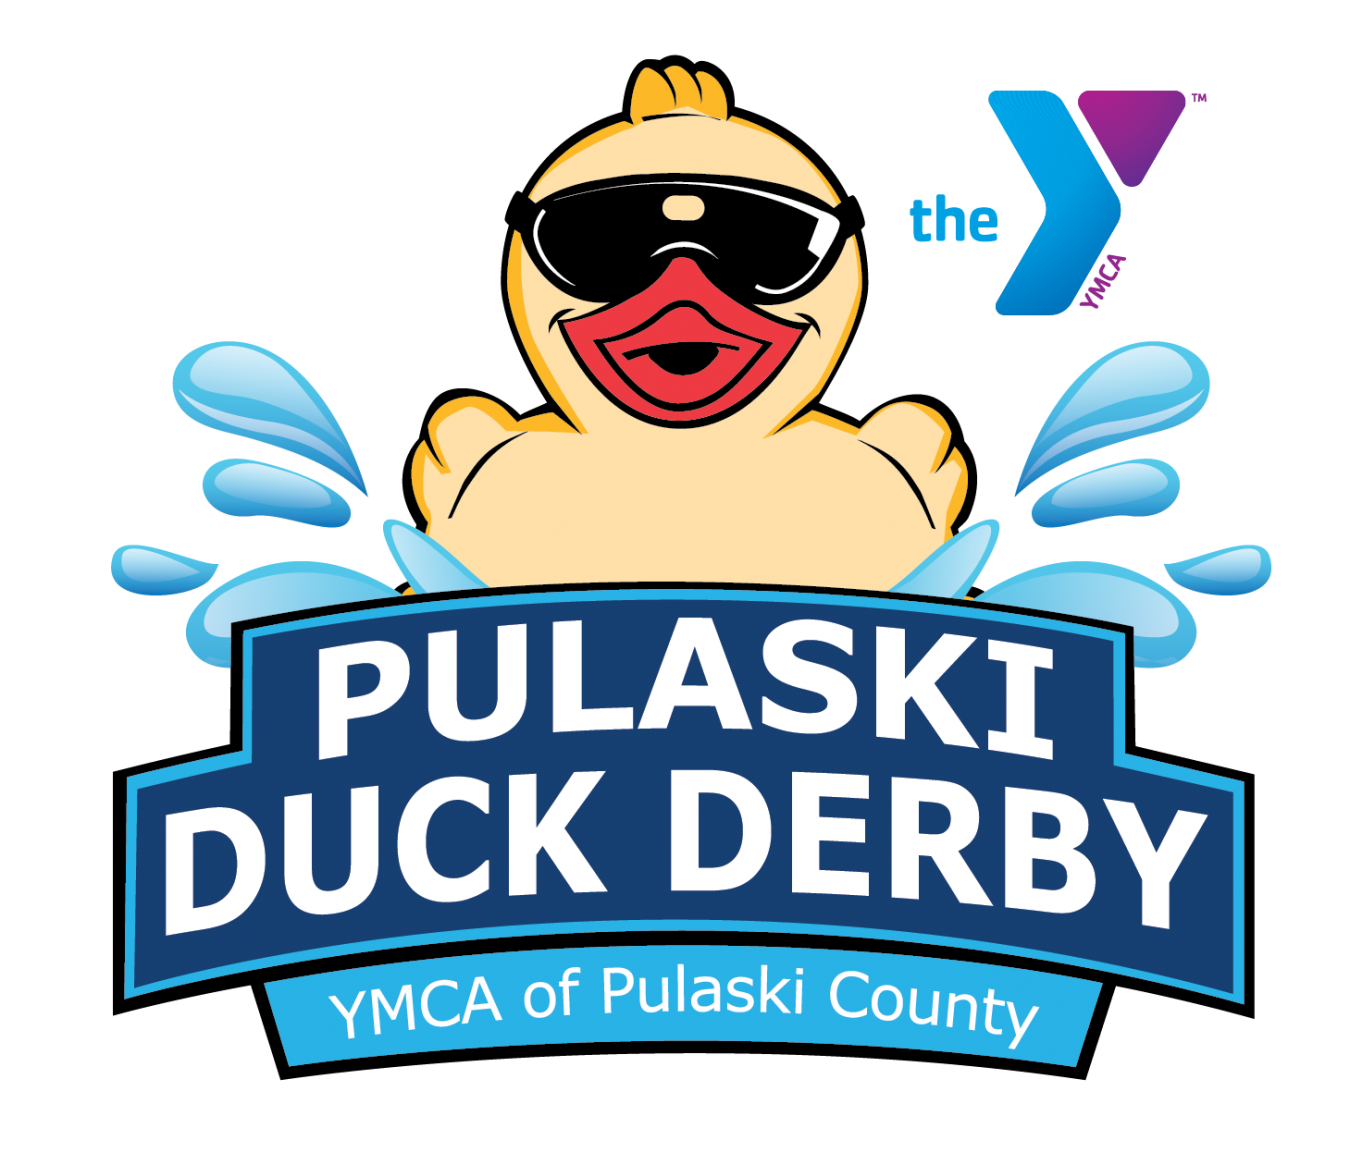 The YMCA of Pulaski Virginia's Duck Derby